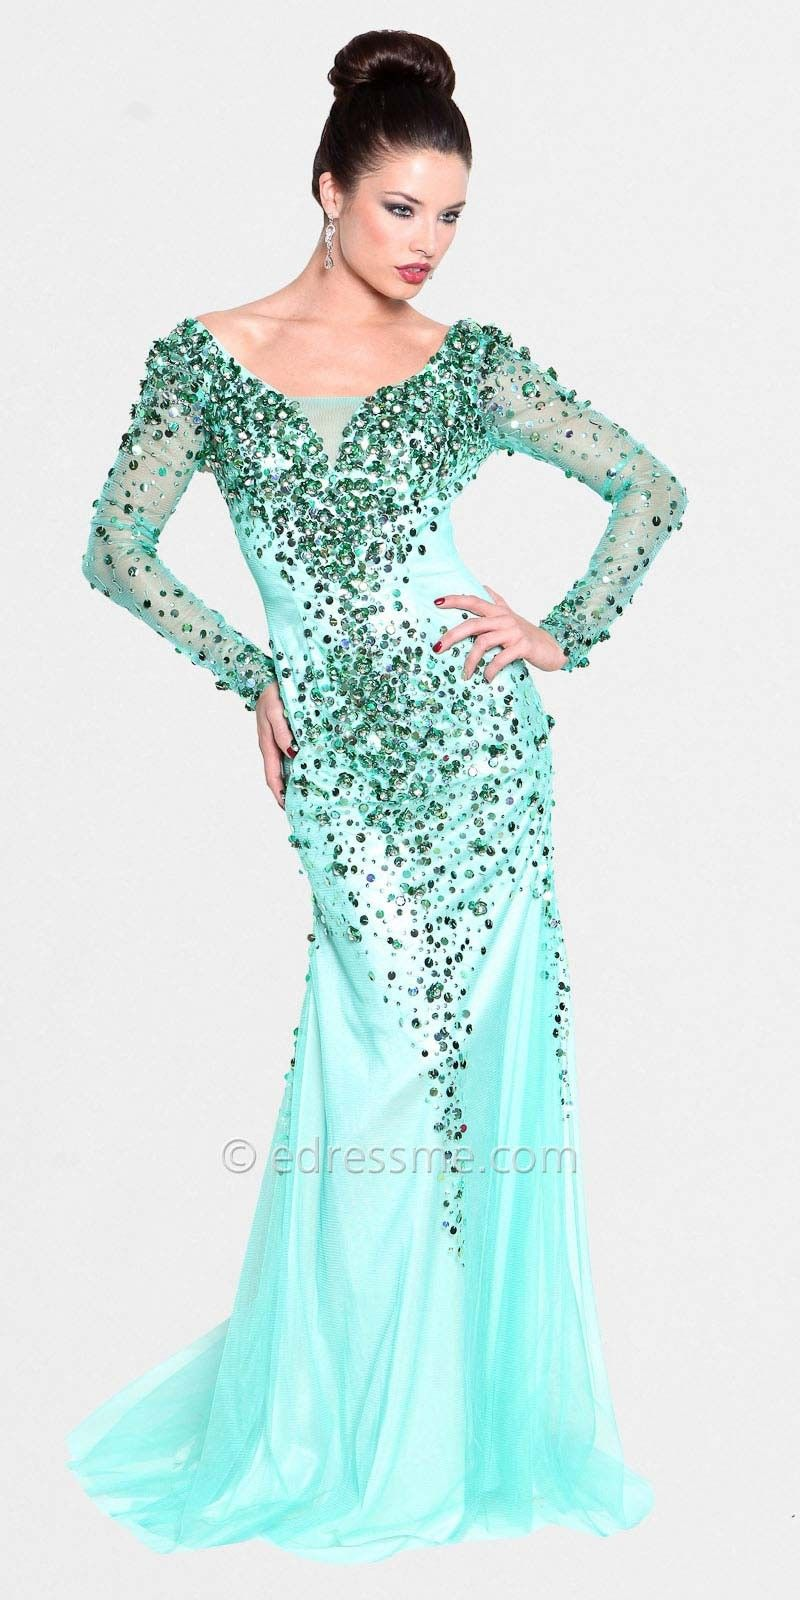 Long sleeve prom dress. I wan this in red and gold | Prom Ideas ...